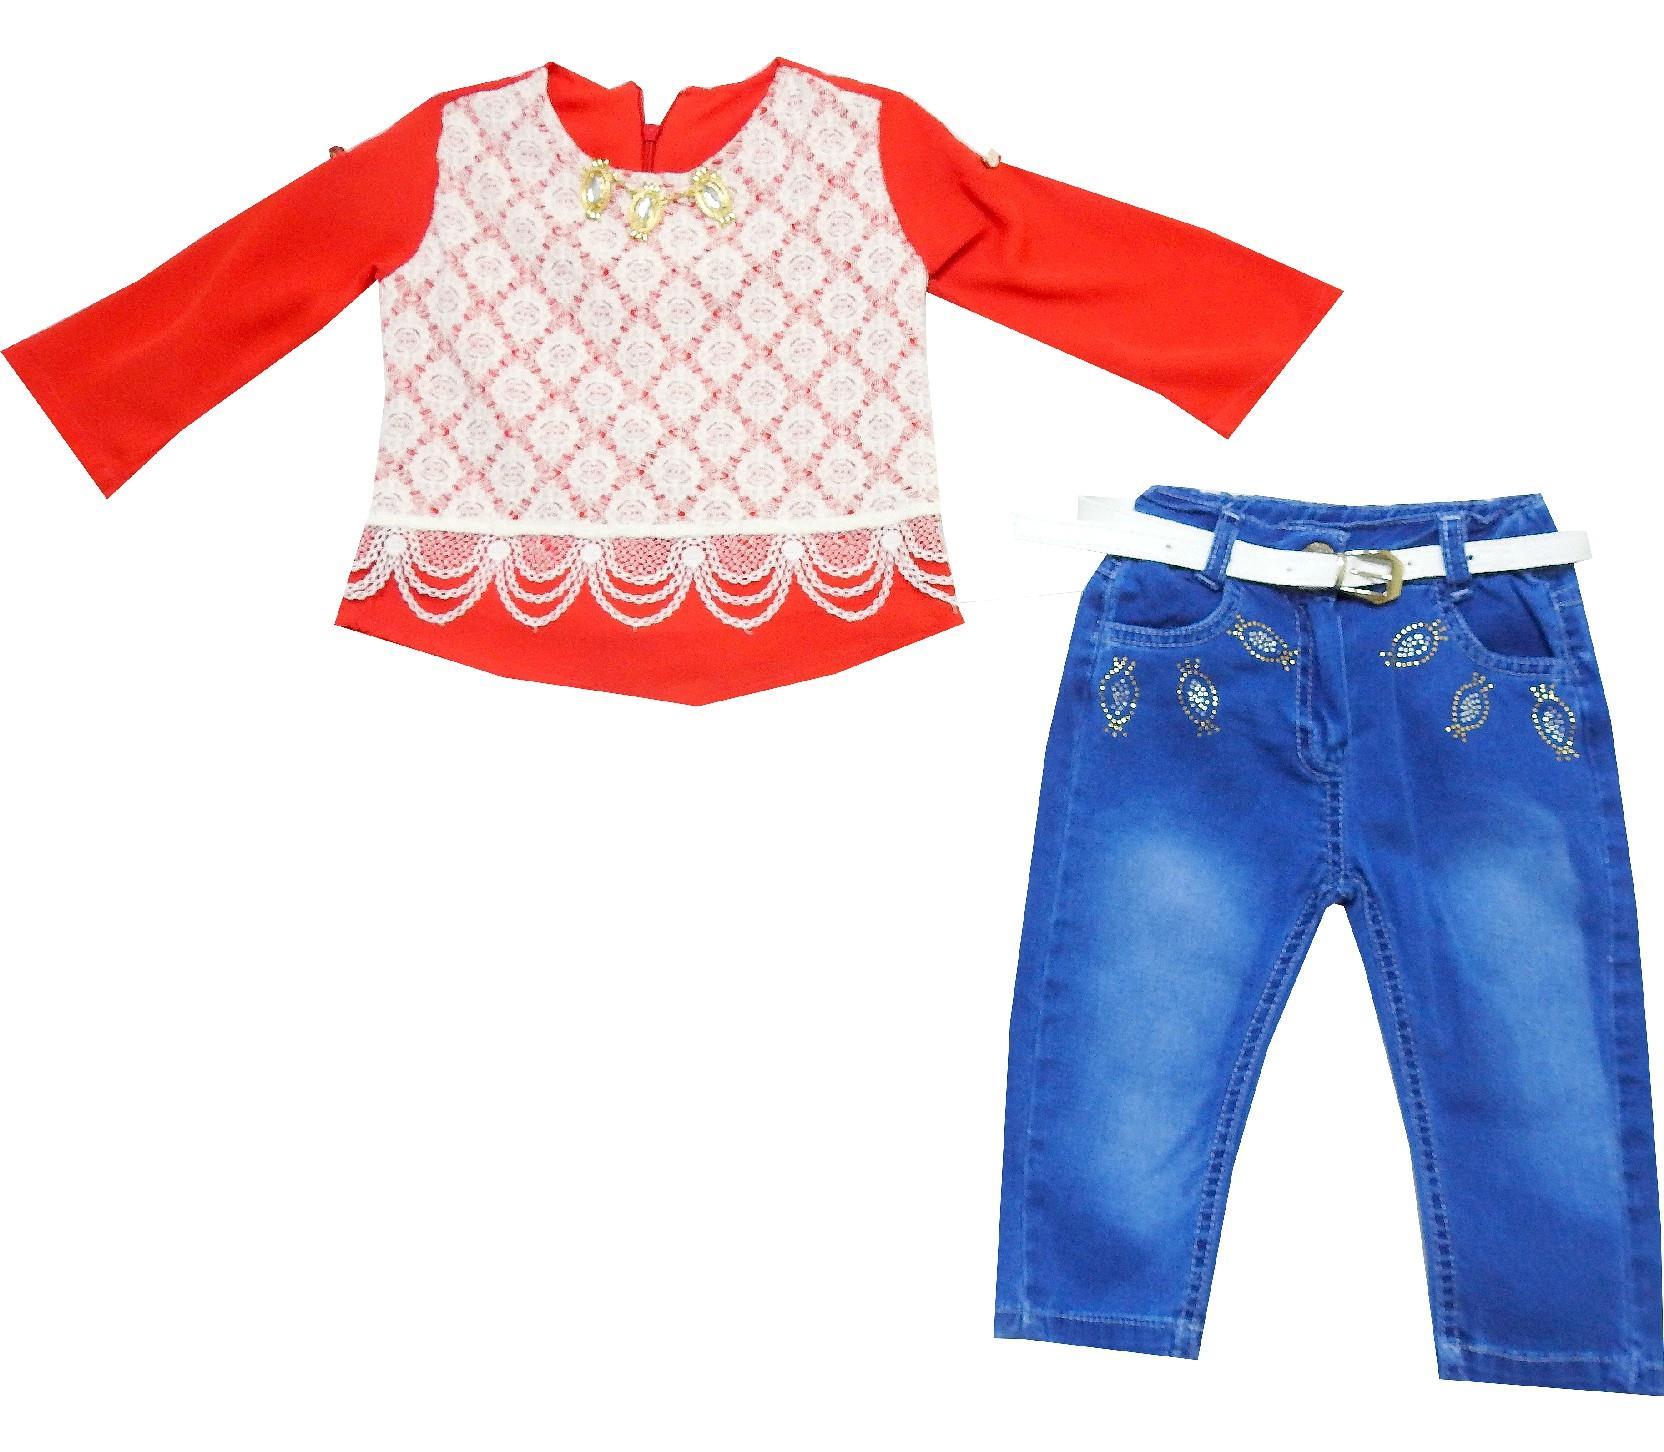 WHOLESALE LACE FABRIC EMBROIDERELY BLOUSE AND JEANS TROUSER DOUBLE SET FOR GIRL (1-2-3-4 AGE)